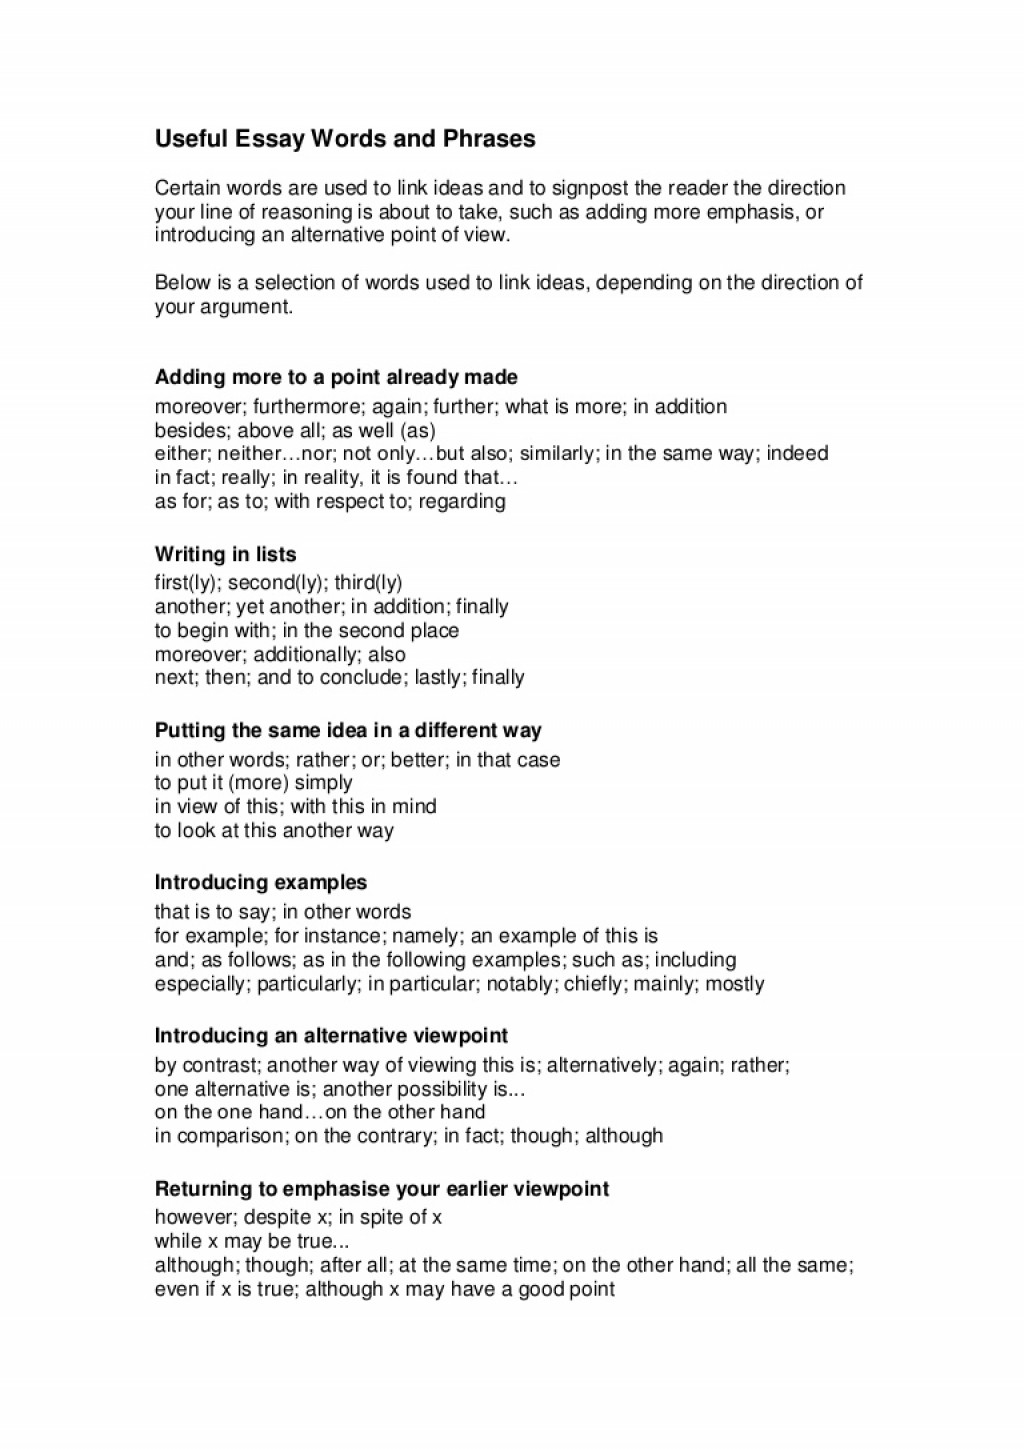 018 Writtenassignments2usefulessaywordsandphrases Phpapp02 Thumbnail Opening Sentences For Essays Essay Unique Good Closing Examples Great Introductory Ielts Large